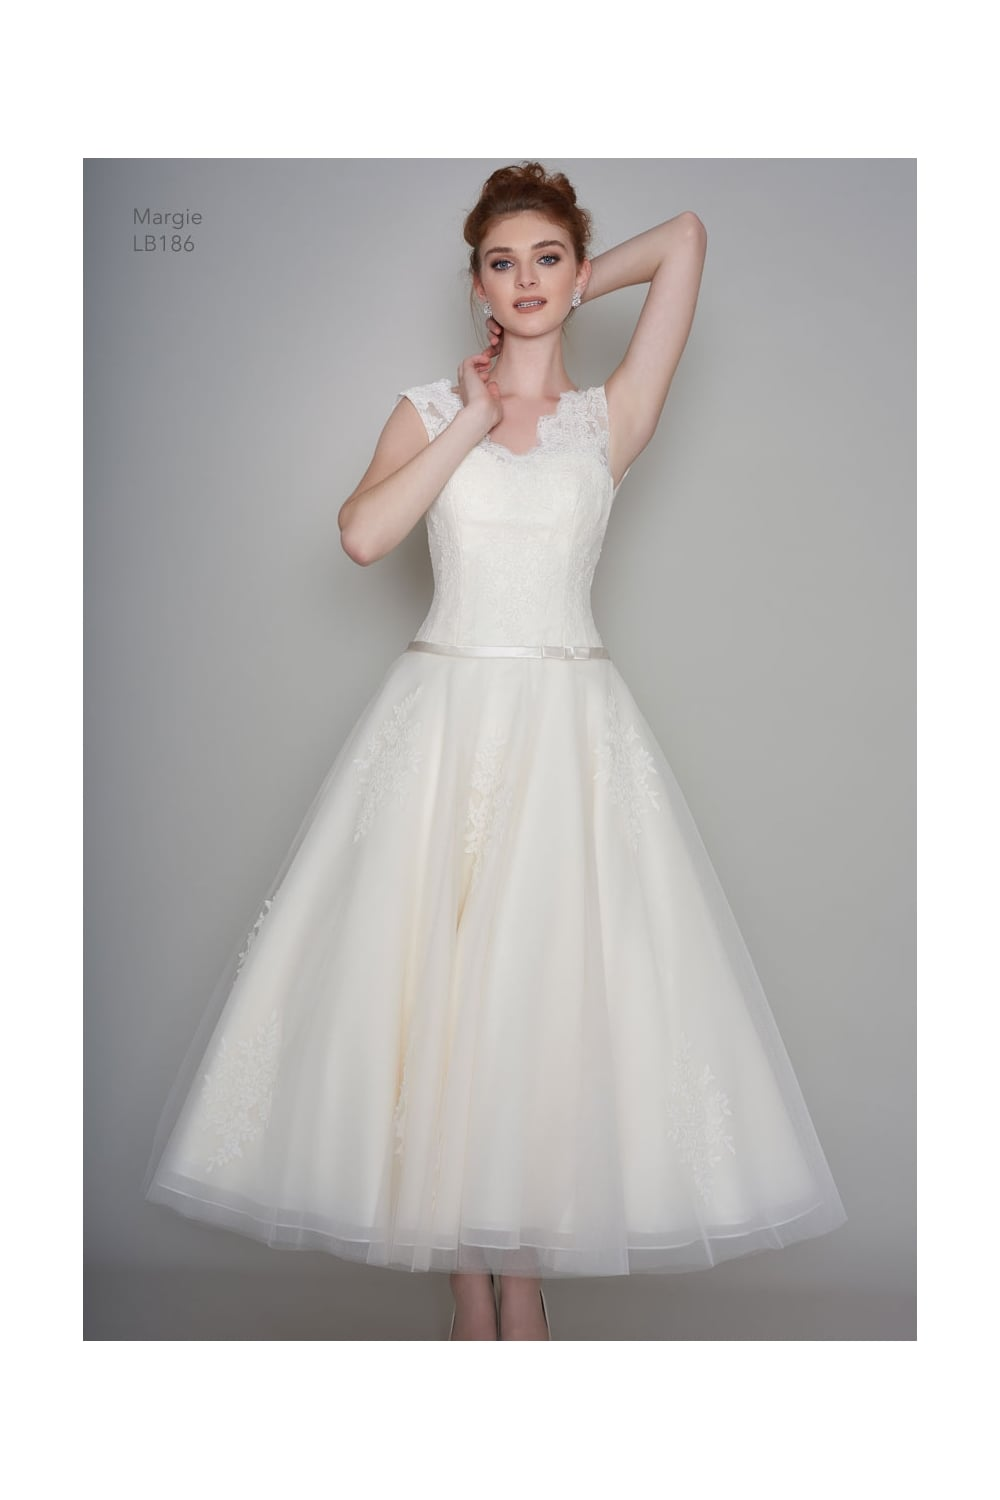 Lb186 margie loulou bridal calf ankle tea length short for Ankle length wedding dress with sleeves